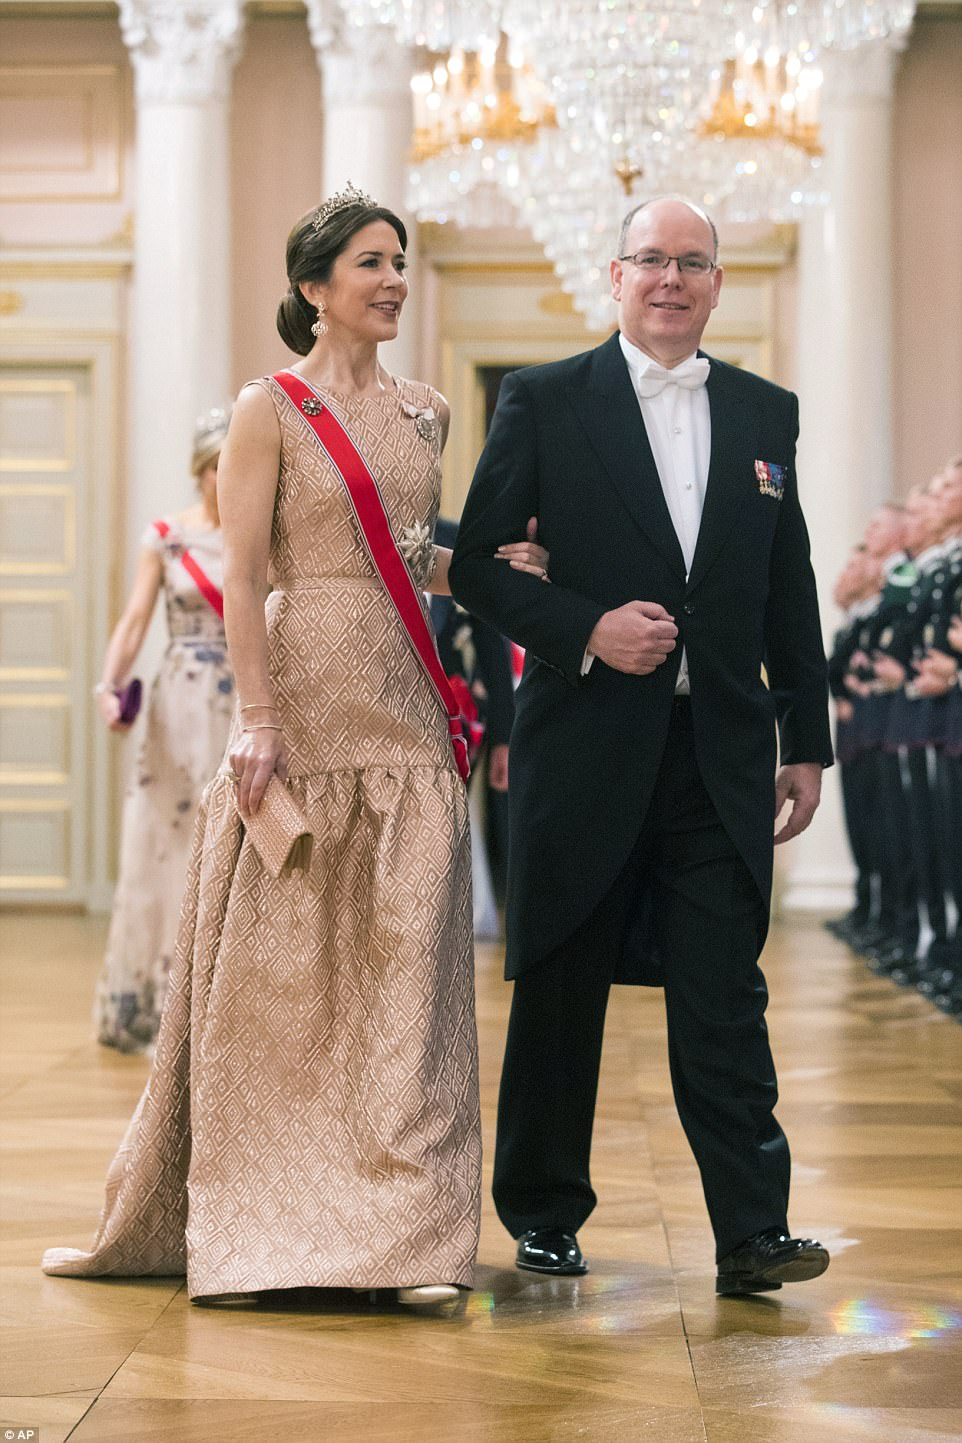 Prince Albert II with Princess of Denmark